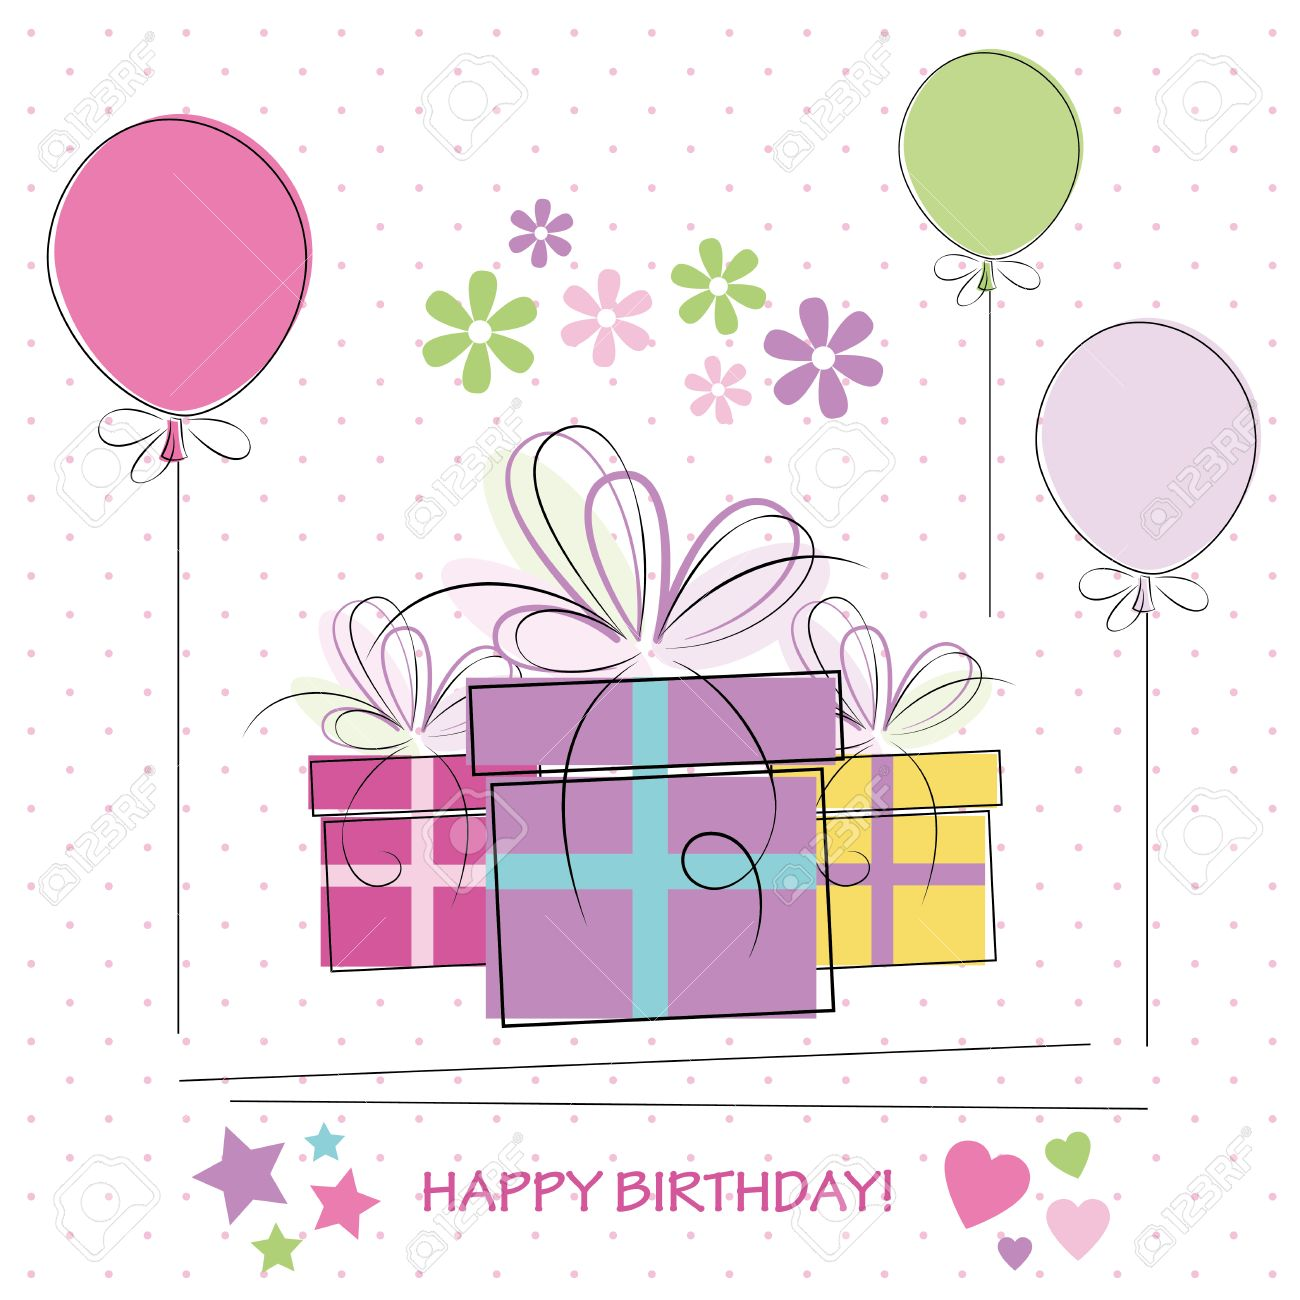 Cute Polka Dot Happy Birthday Gifts Balloons And Flowers Card